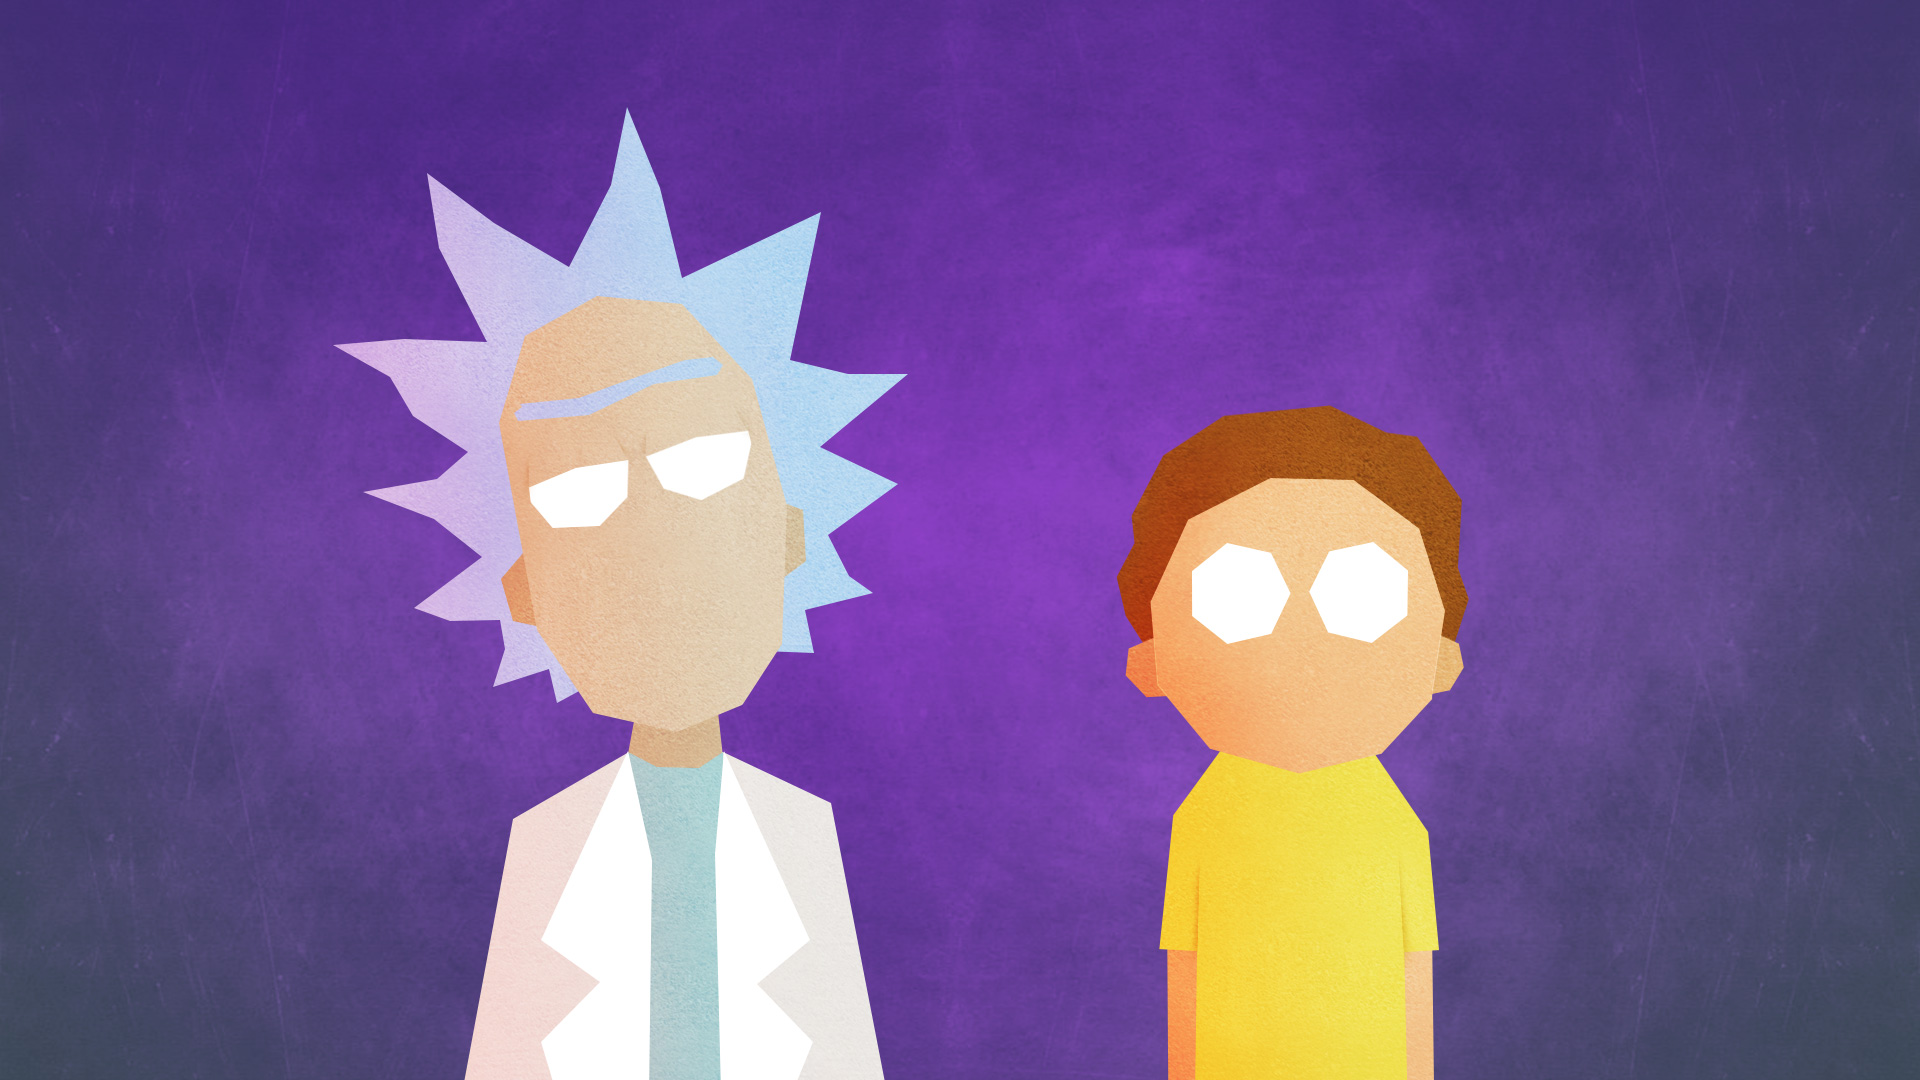 Wallpaper Of Minimalist Morty Smith Rick Sanchez